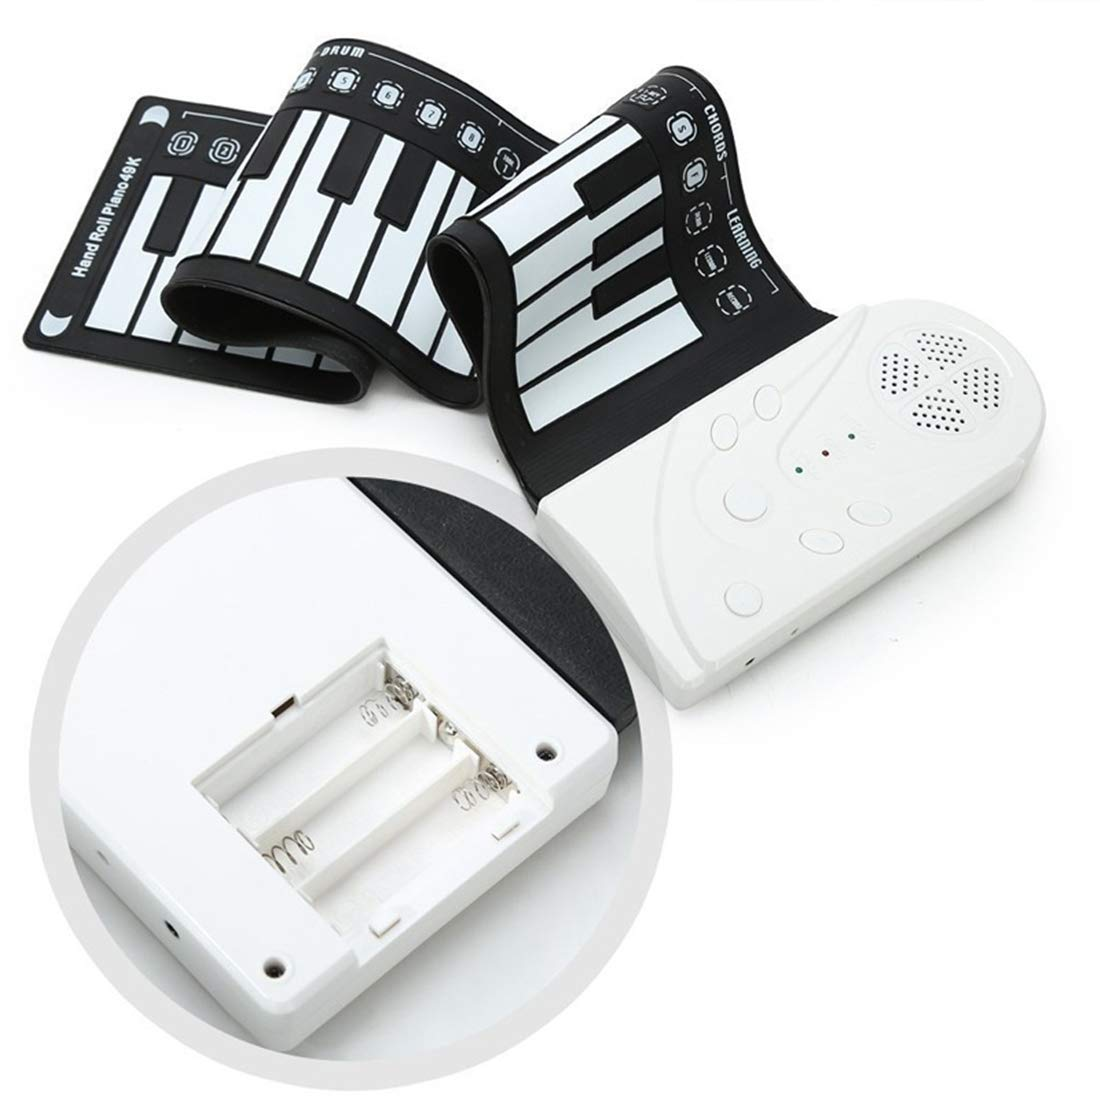 Elrido Portable Electronic Piano Keyboard Kids 49-Key Roll-Up Piano Keyboard Portable Flexible Musical Educational Toy Instrument Soft Responsive Keys Universal Soft Roll Up Piano (White)